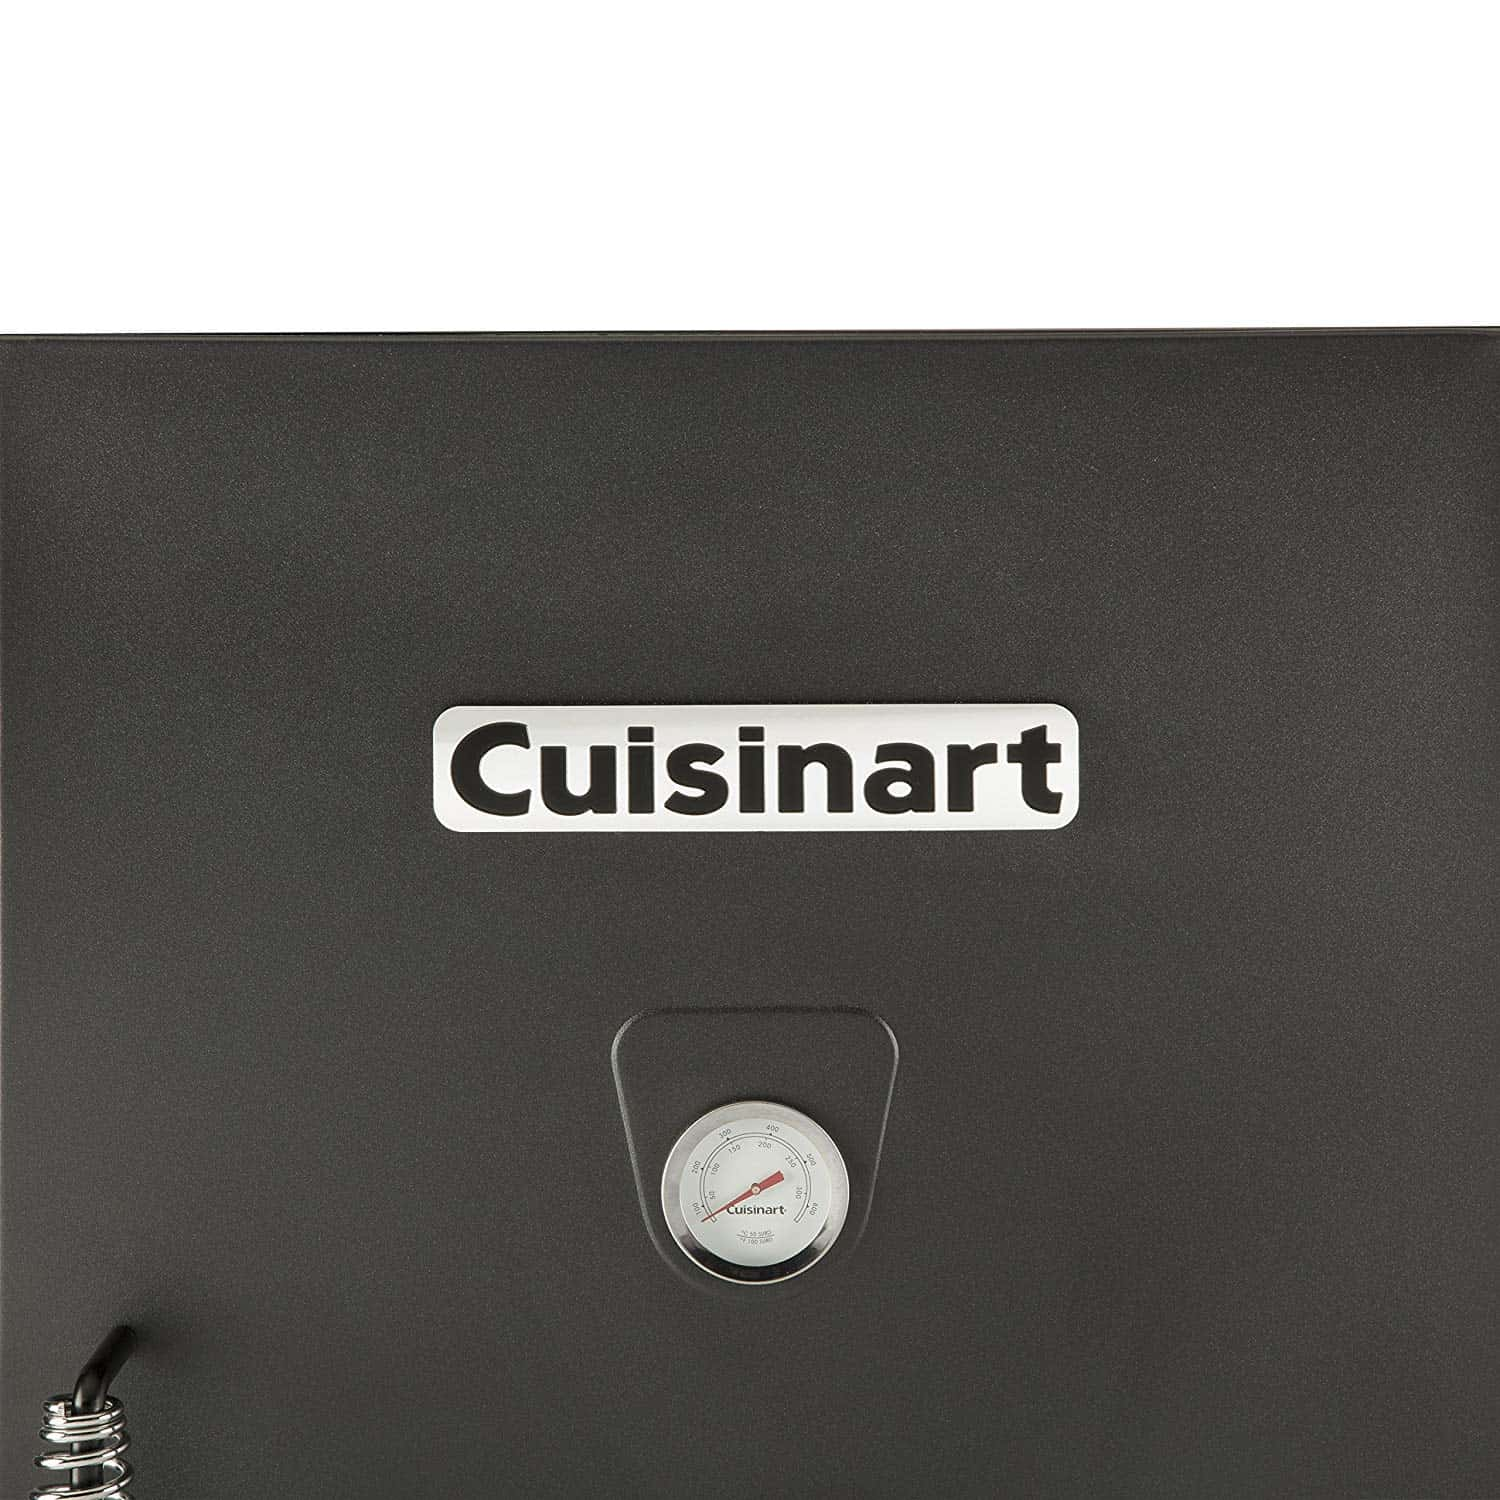 Cuisinart COS-330 Electric Smoker